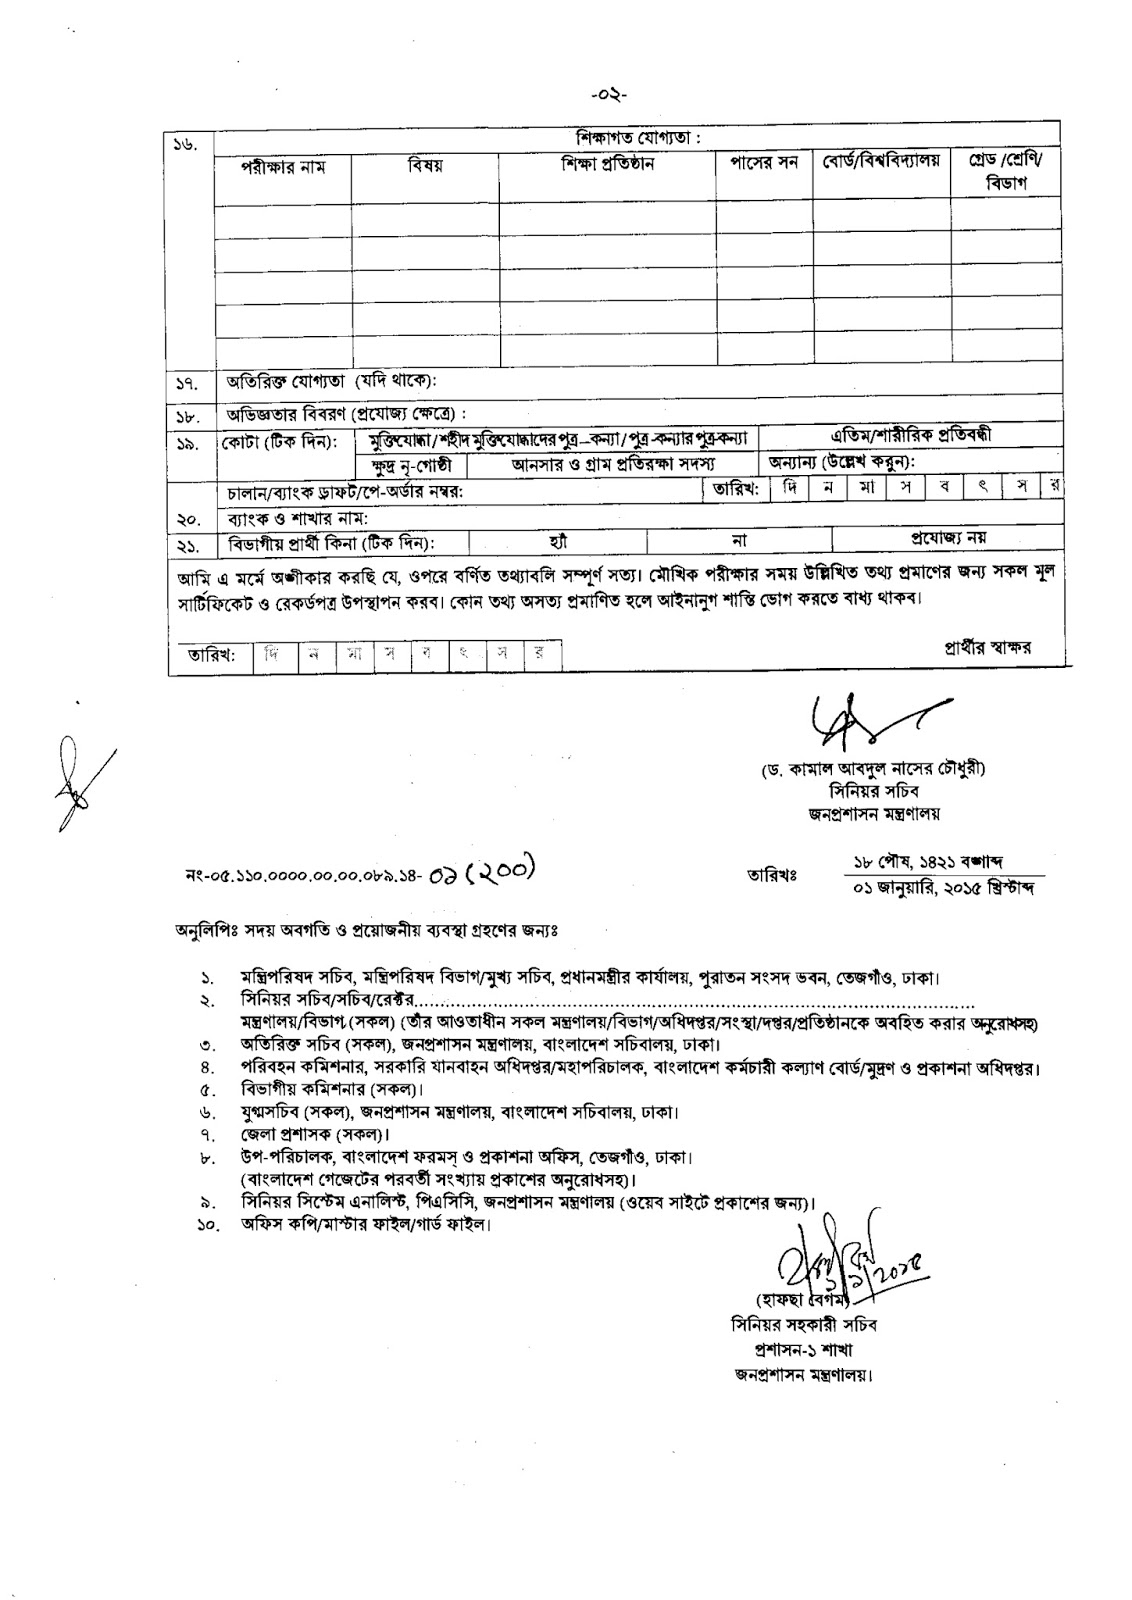 Additional District Judge's 2nd Court Office, Mymensingh Job Application Form